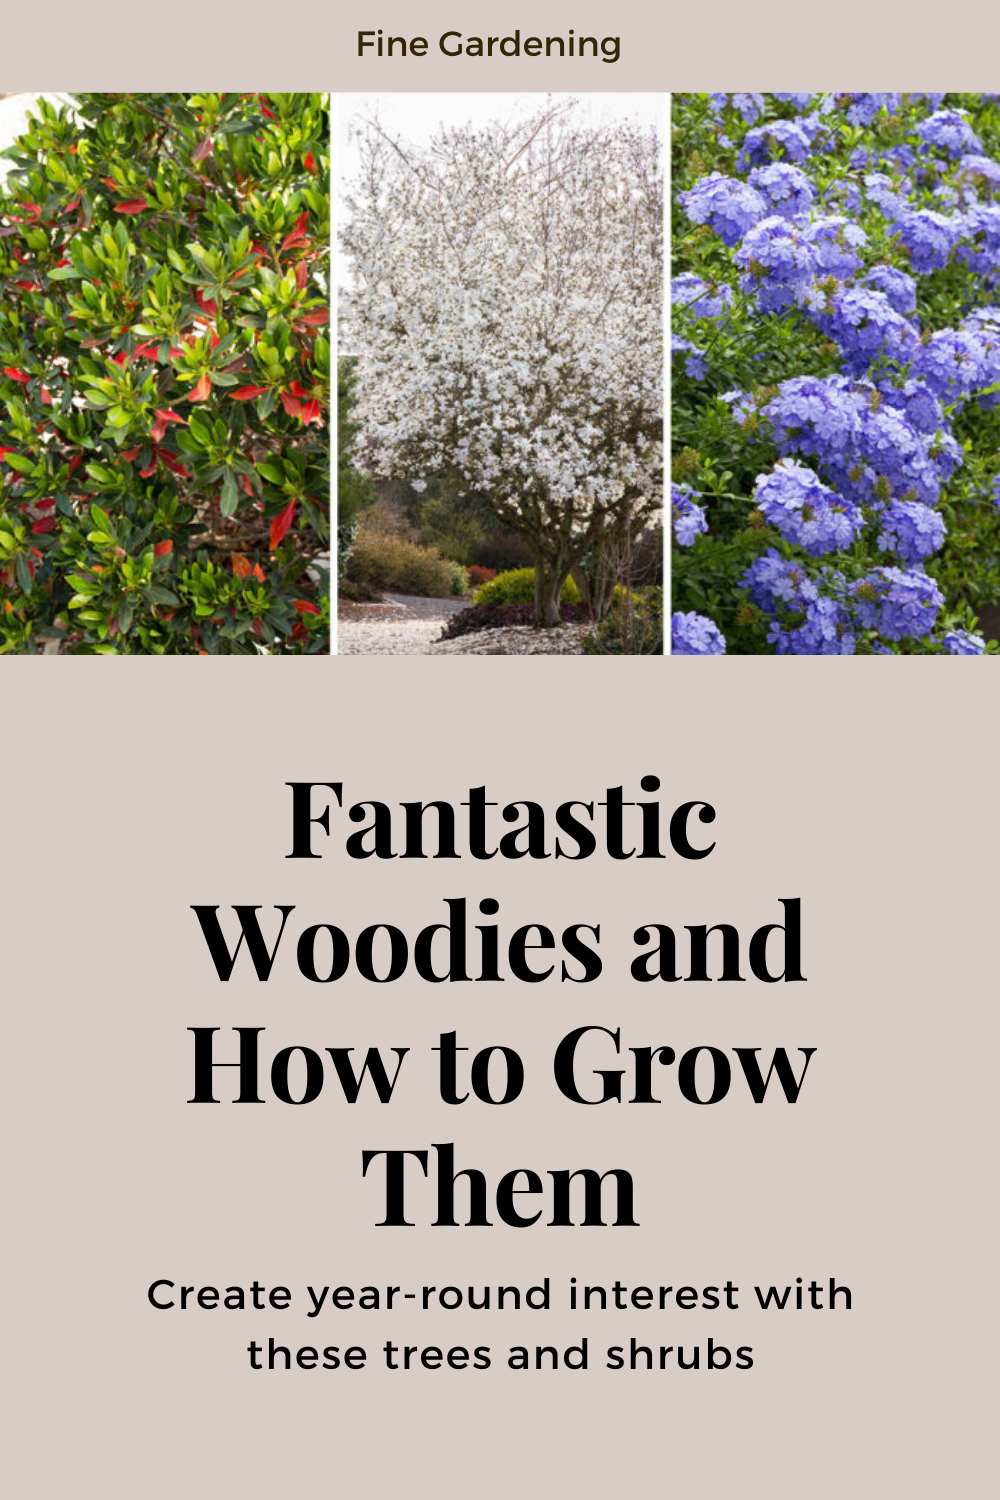 Fantastic Woodies And How To Grow Them Fine Gardening Trees